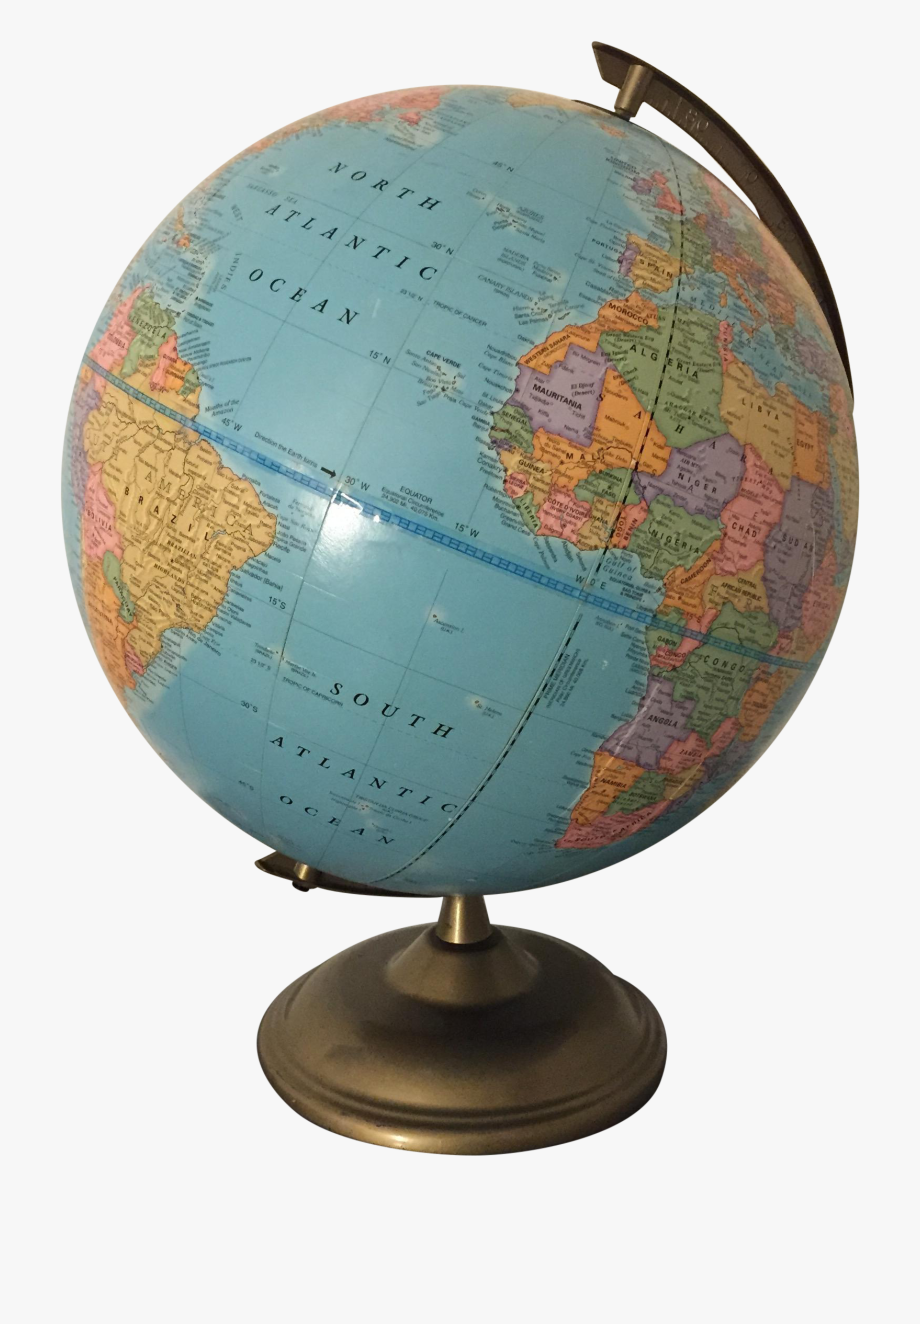 Geography clipart natural world. Globe vintage png